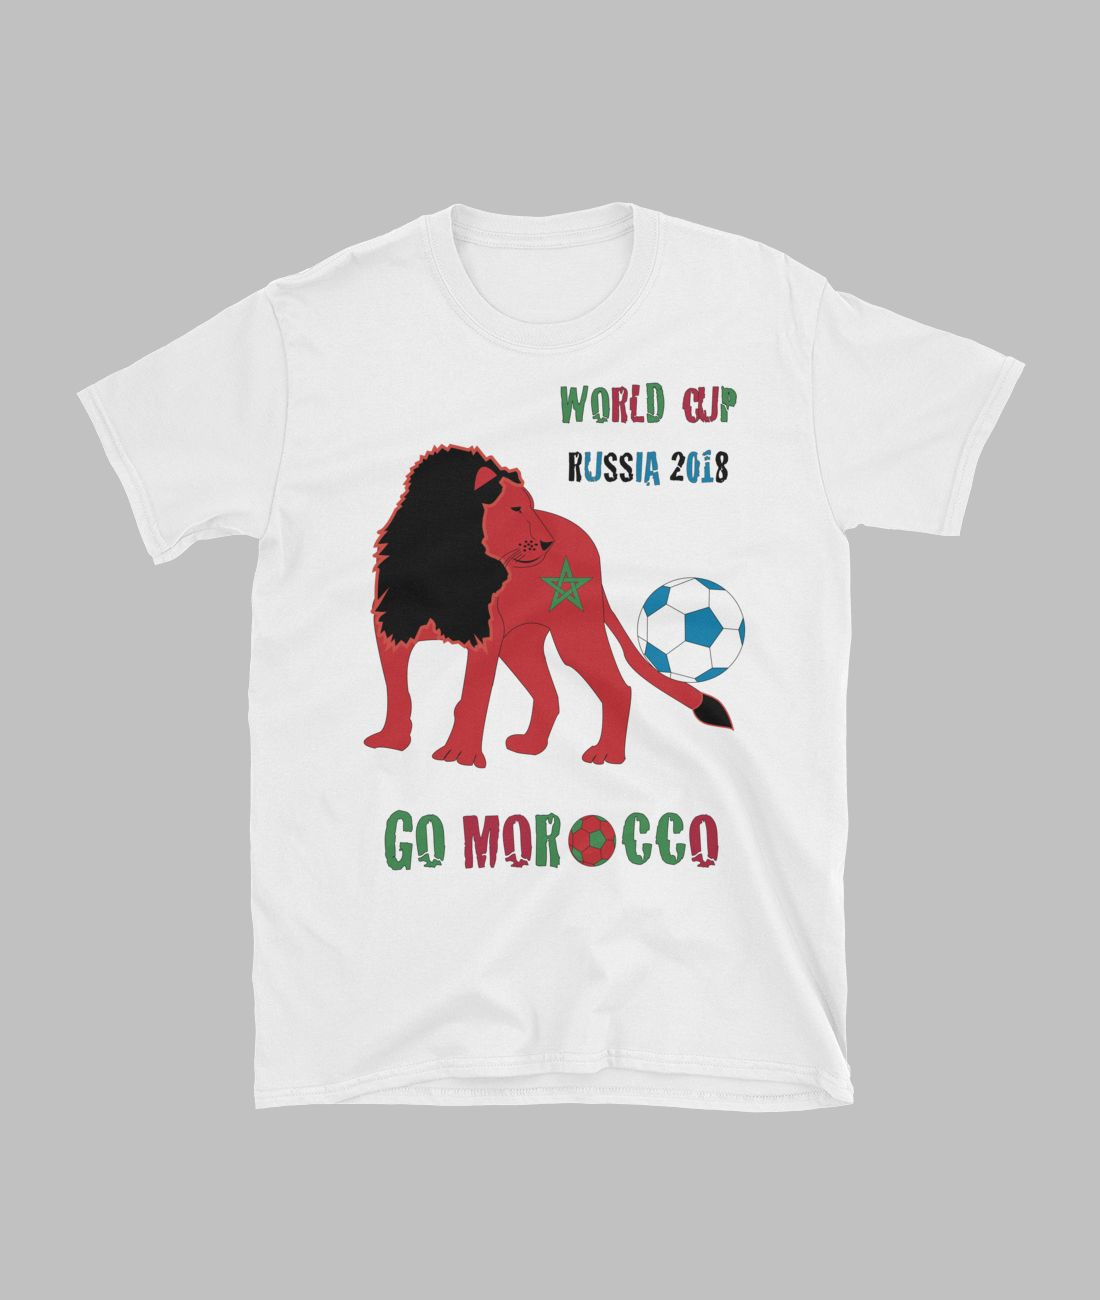 Moroccan supporters T shirt with lion